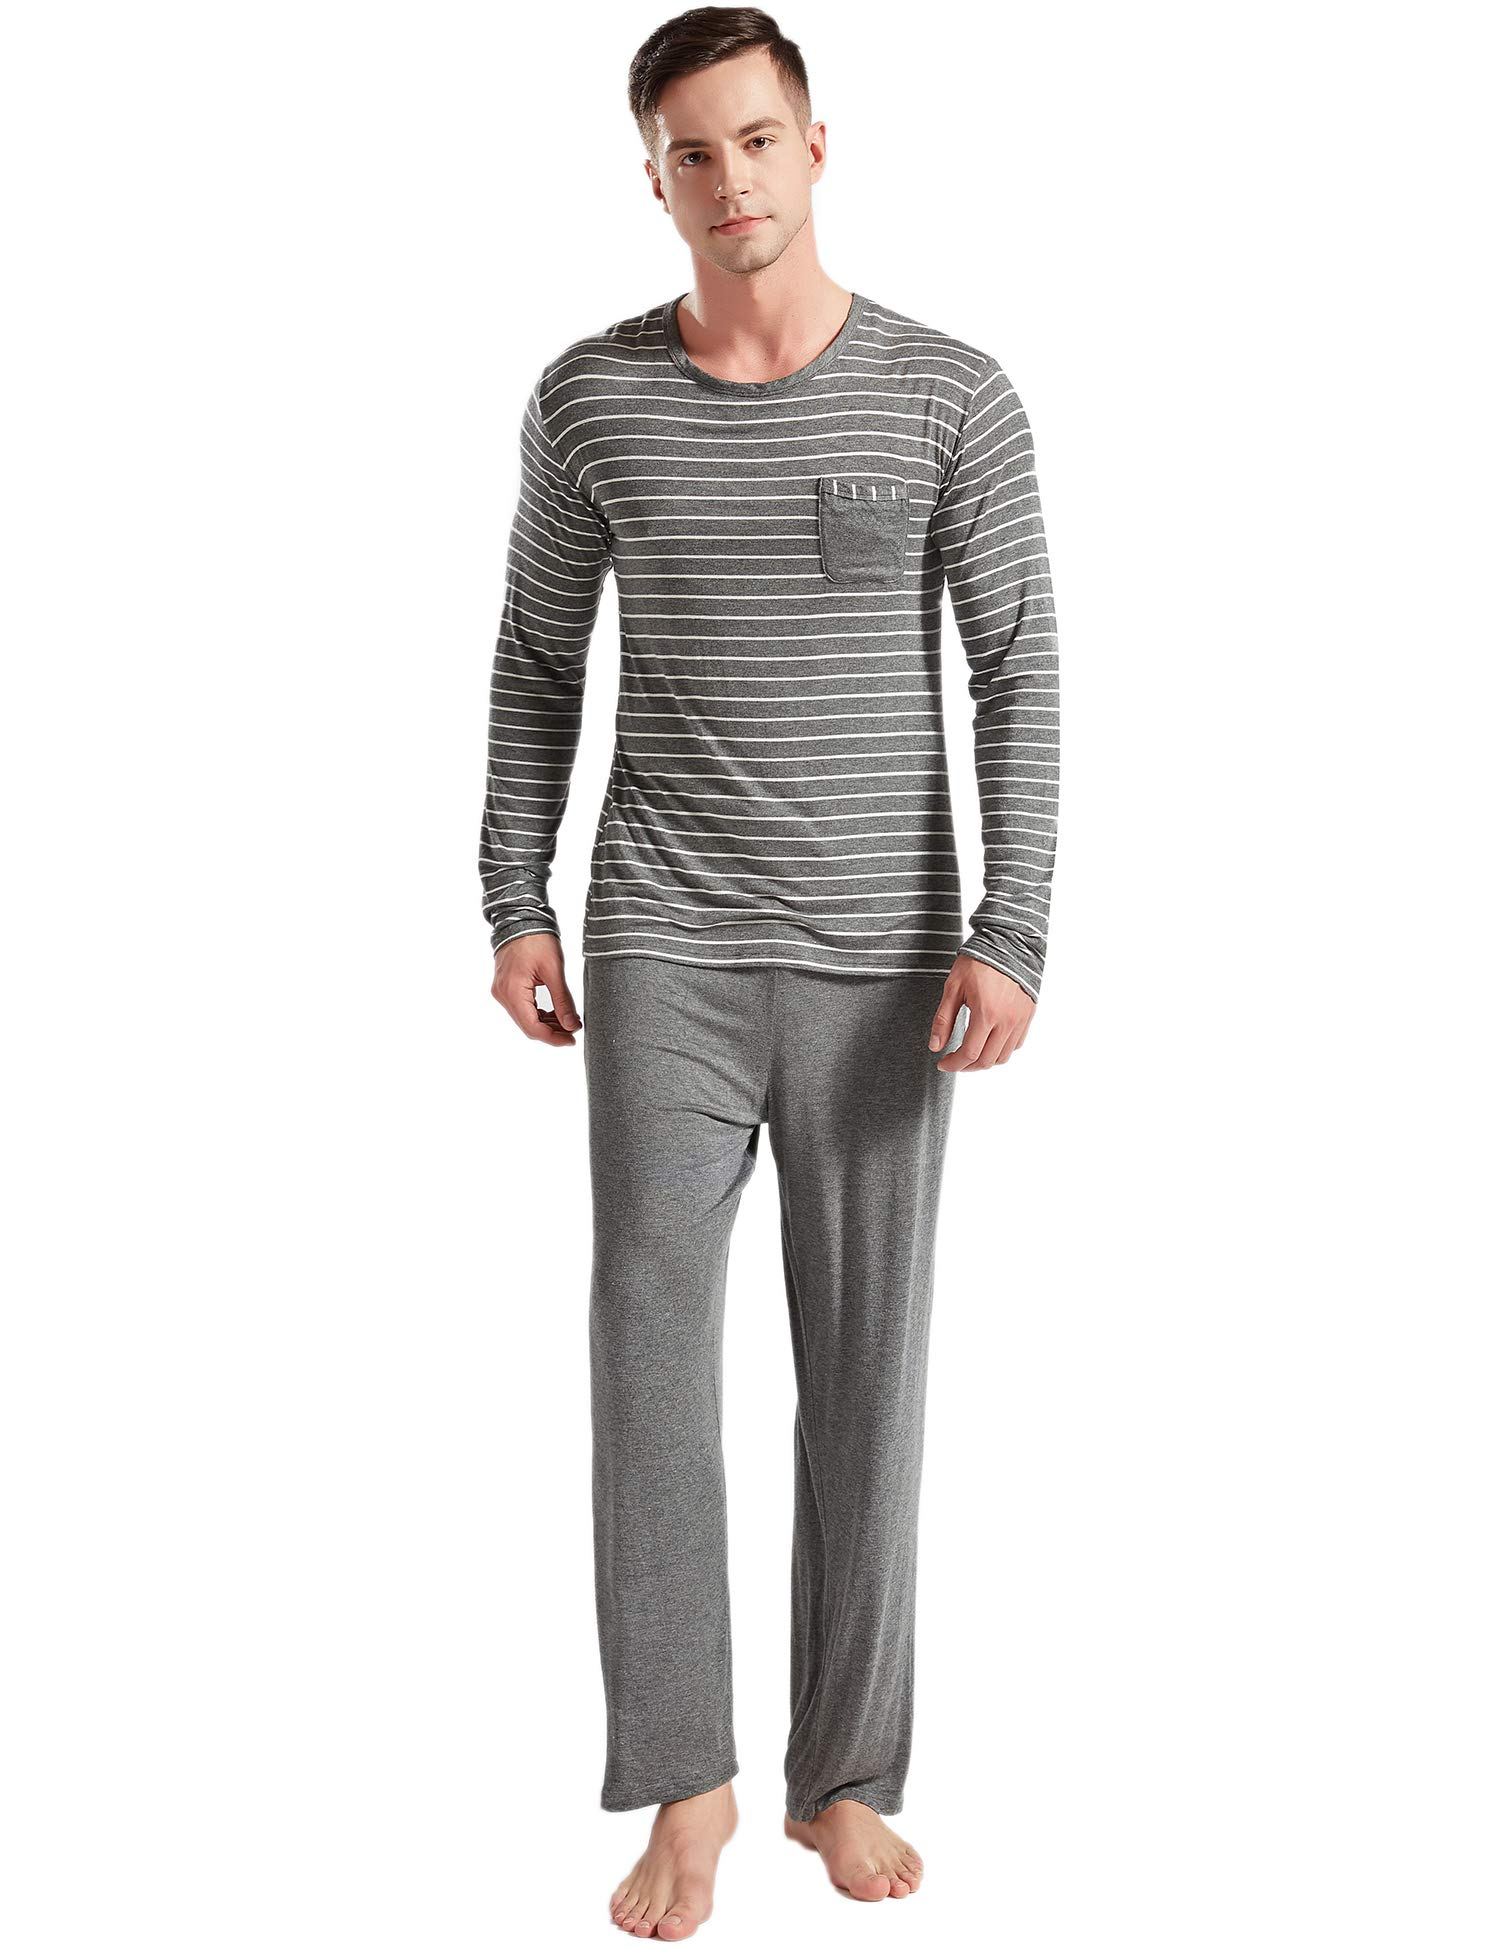 Suntasty Men's Pajamas Cotton Soft Classic Striped Crew Neck Lounge Sleepwear 2 Piece Set Long Sleeve Top with Pant Grey S